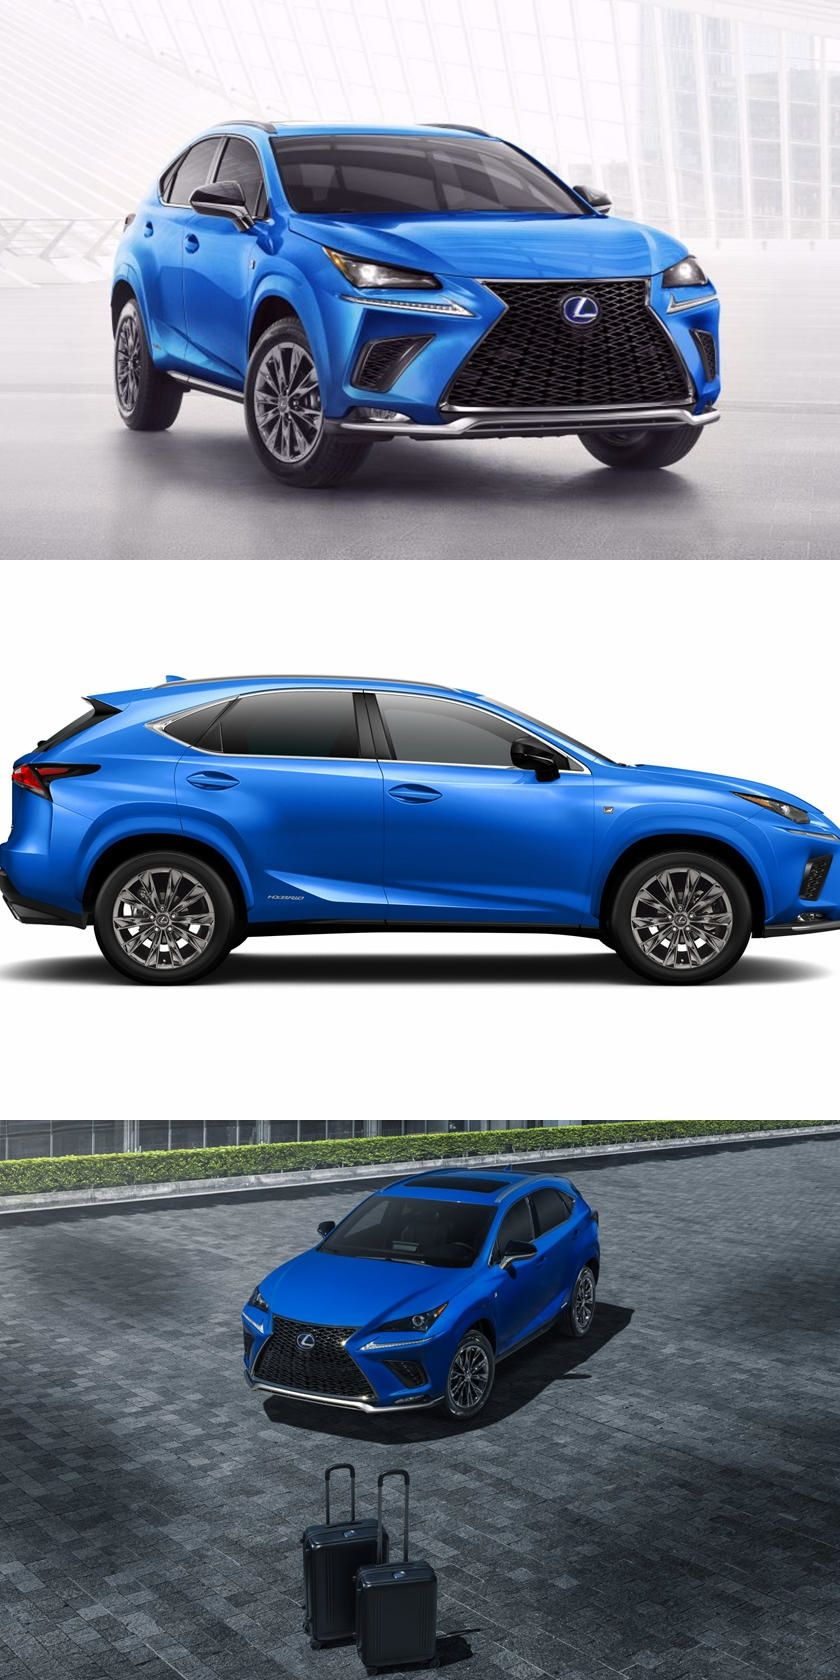 2021 Lexus Nx Hybrid Gets Stylish New Special Edition Only 1000 Examples Will Be Built In 2020 Lexus Stylish Edition